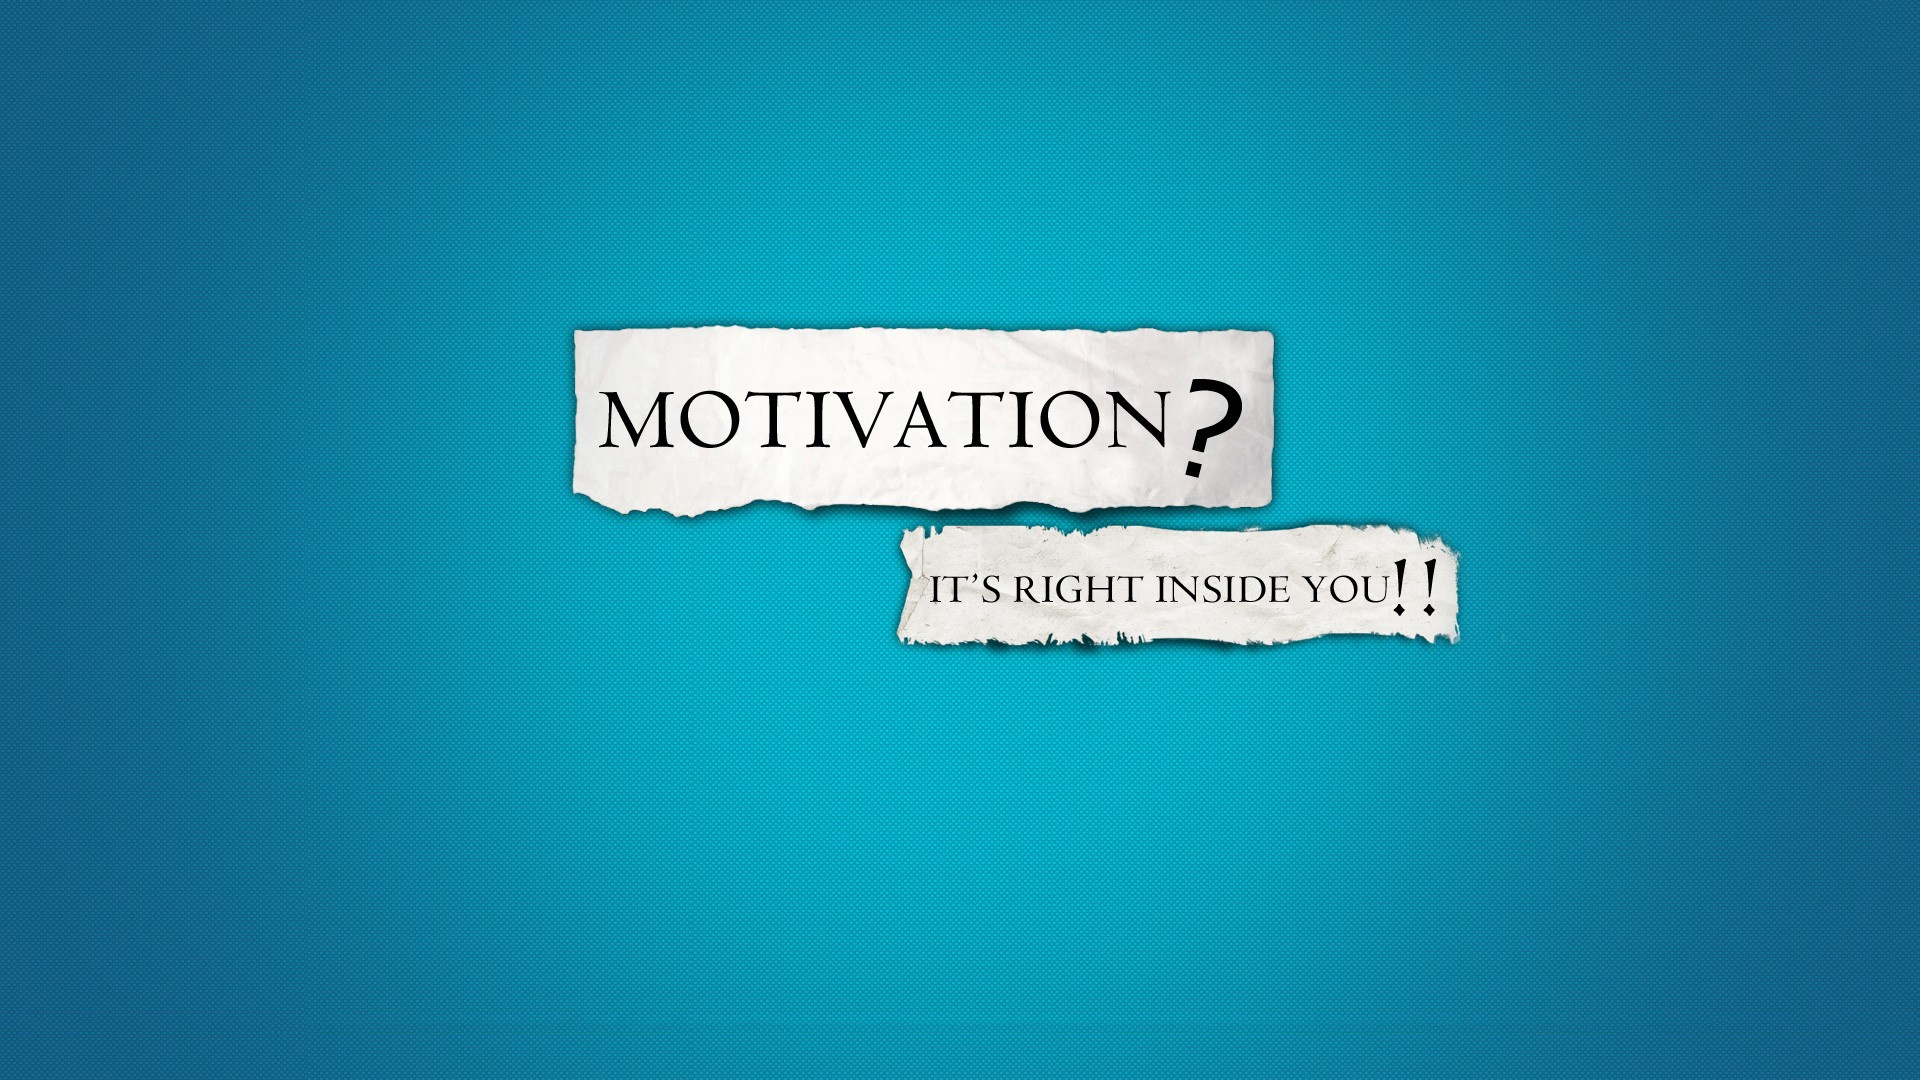 Motivation its right inside you